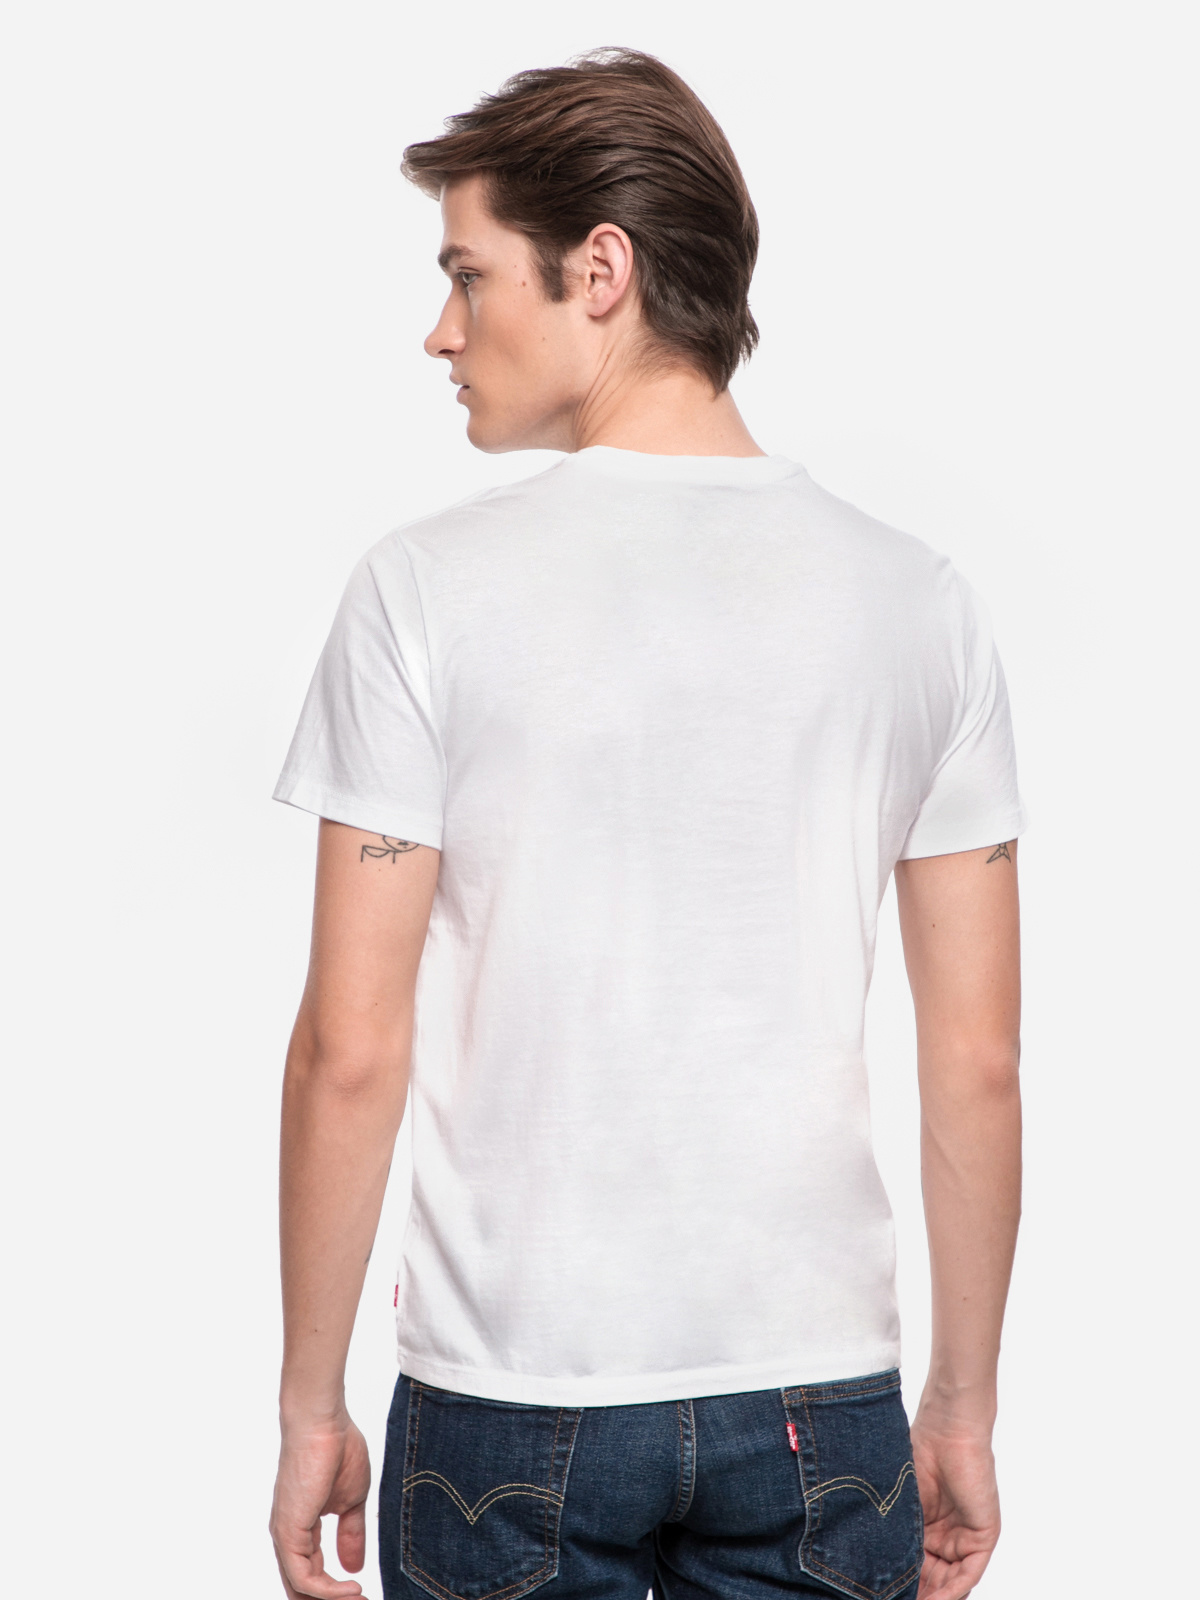 LEVIS the graphic tee housemark-3